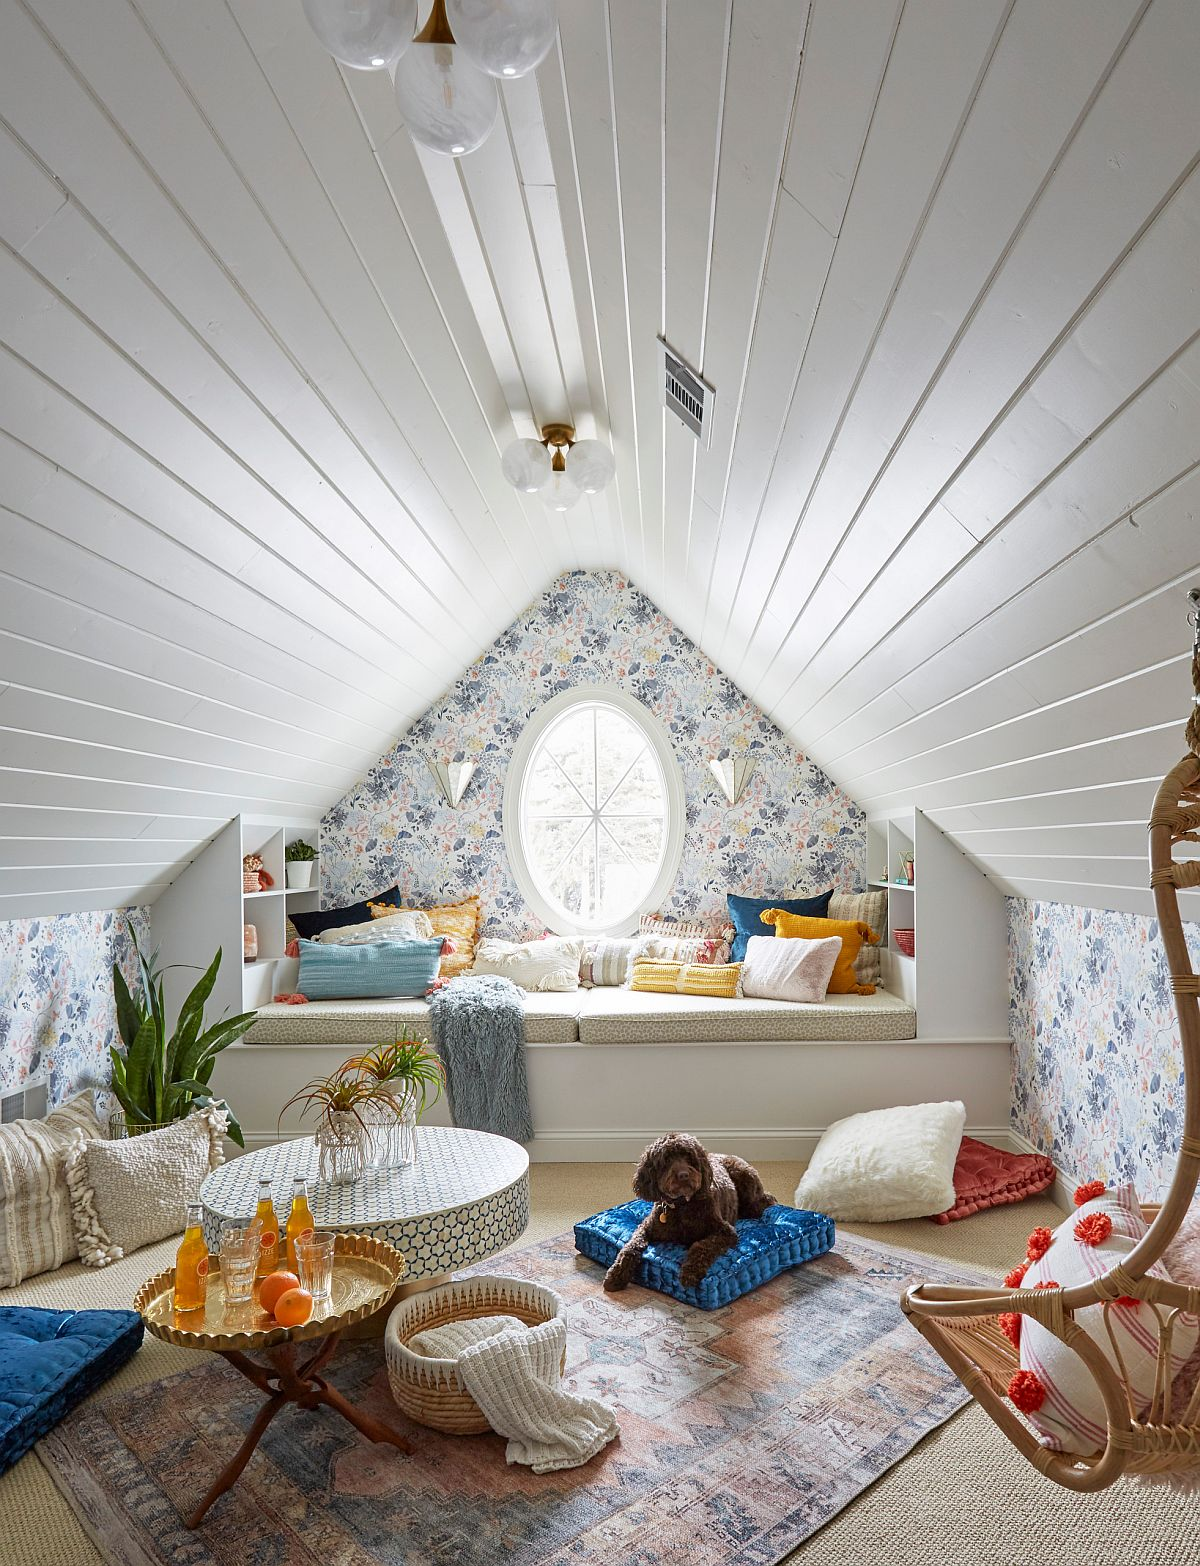 Fabulous attic hangout that is great for kids and teens alike with a window seat and ample space